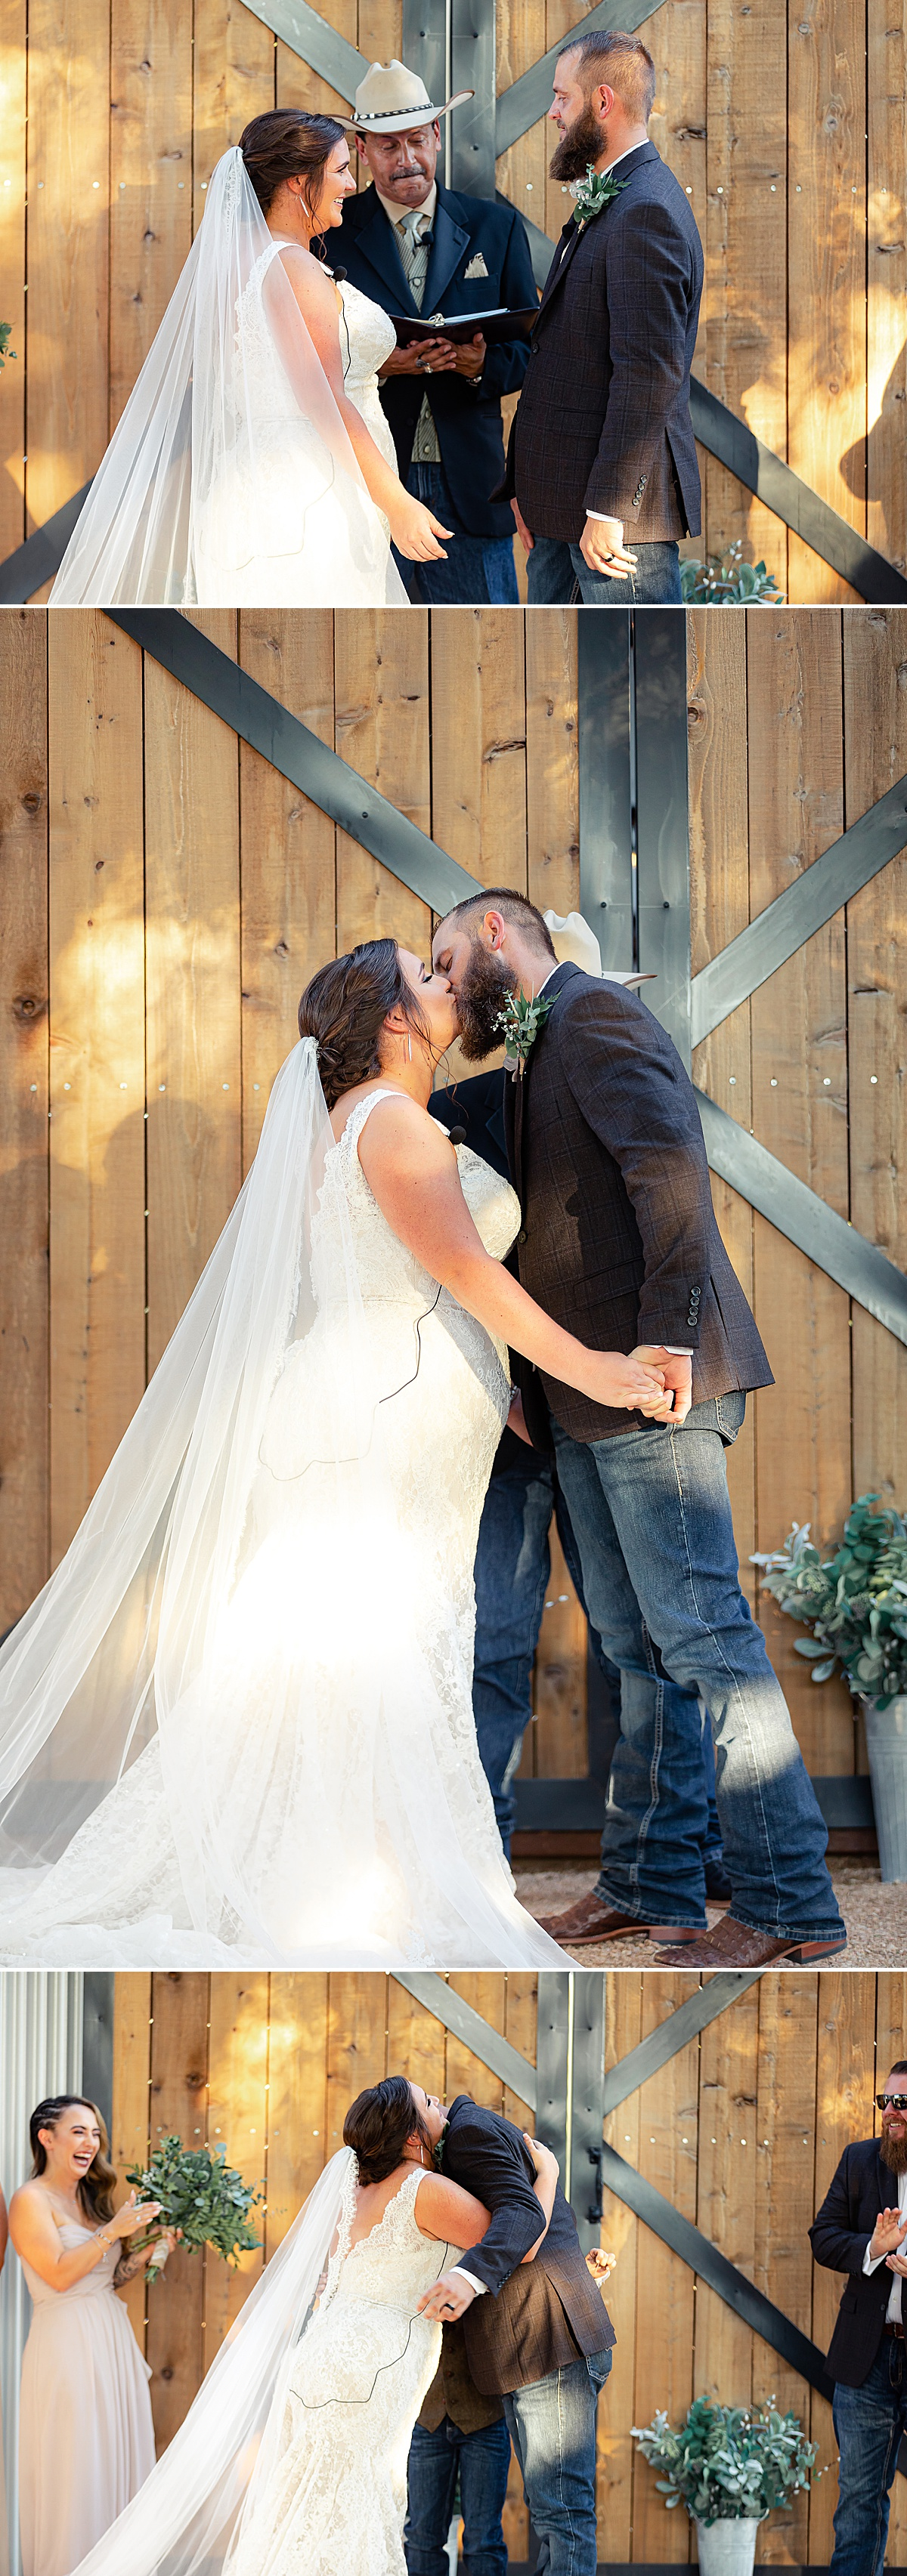 Rustic-Texas-Wedding-Hollow-Creek-Ranch-Carly-Barton-Photography_0118.jpg